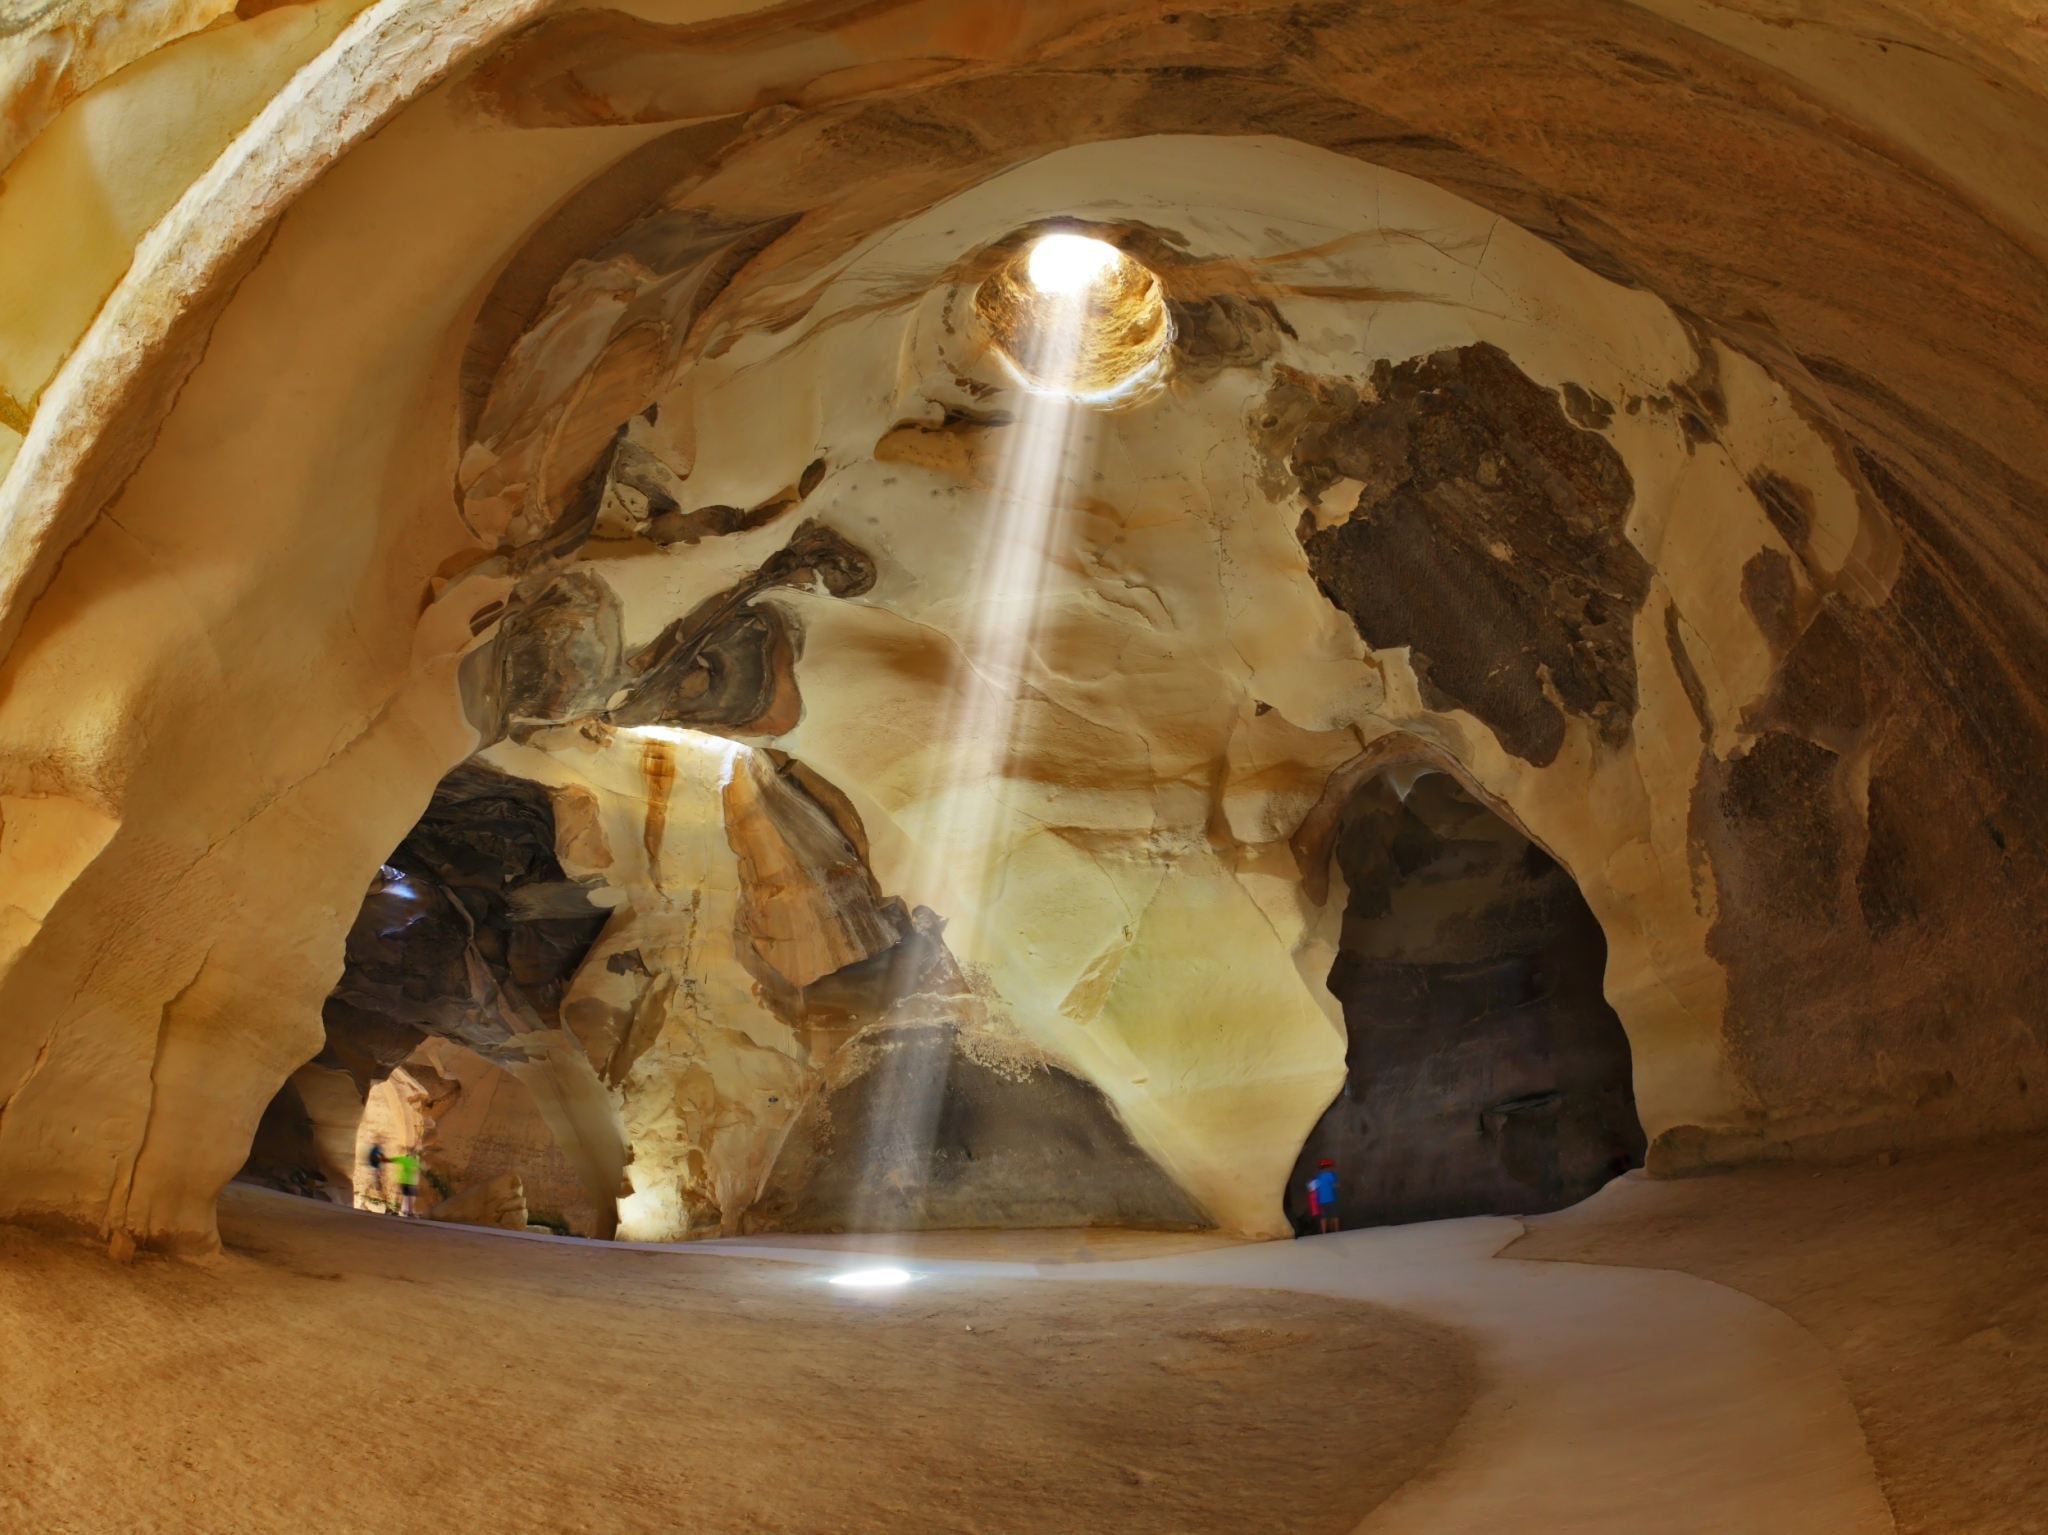 Beit Guvrin National Park